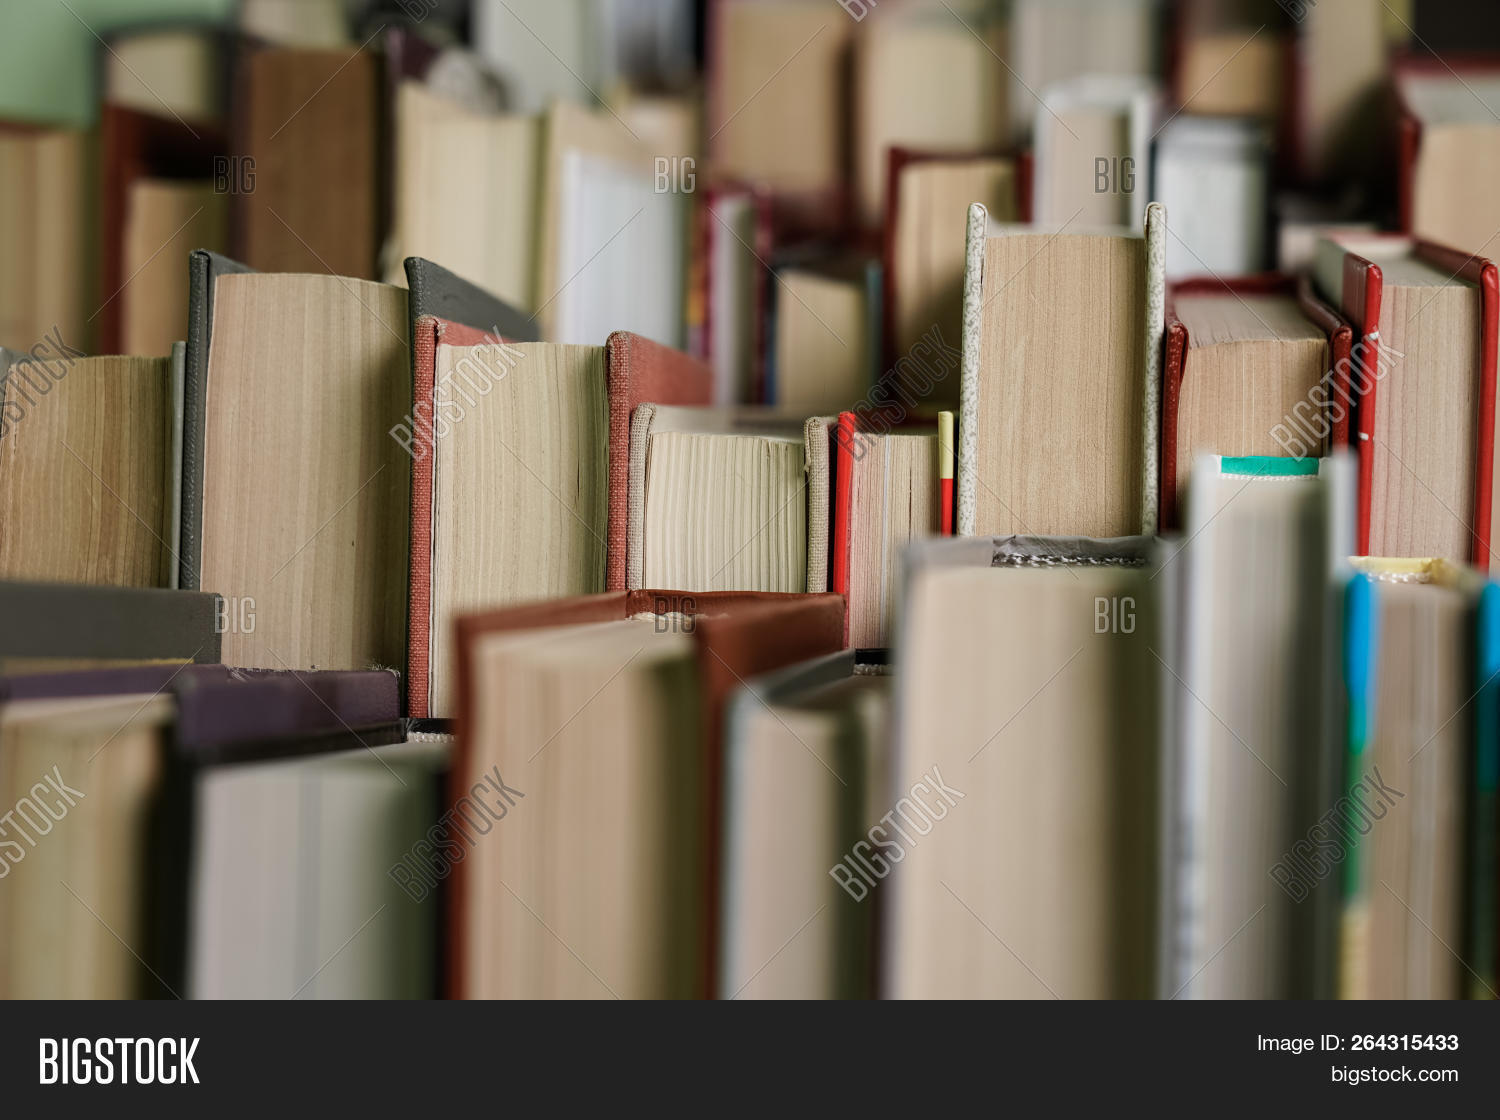 abstract,aged,back,background,books,bookstore,campus,college,culture,data,dictionary,education,educational,electronic,examinations,gray,group,growth,hand,hardcover,heap,heavy,heritage,information,knowledge,law,learn,leisure,library,literacy,literature,many,nobody,old,page,paper,pile,publisher,read,school,science,stack,study,text,textbook,texture,university,vintage,wisdom